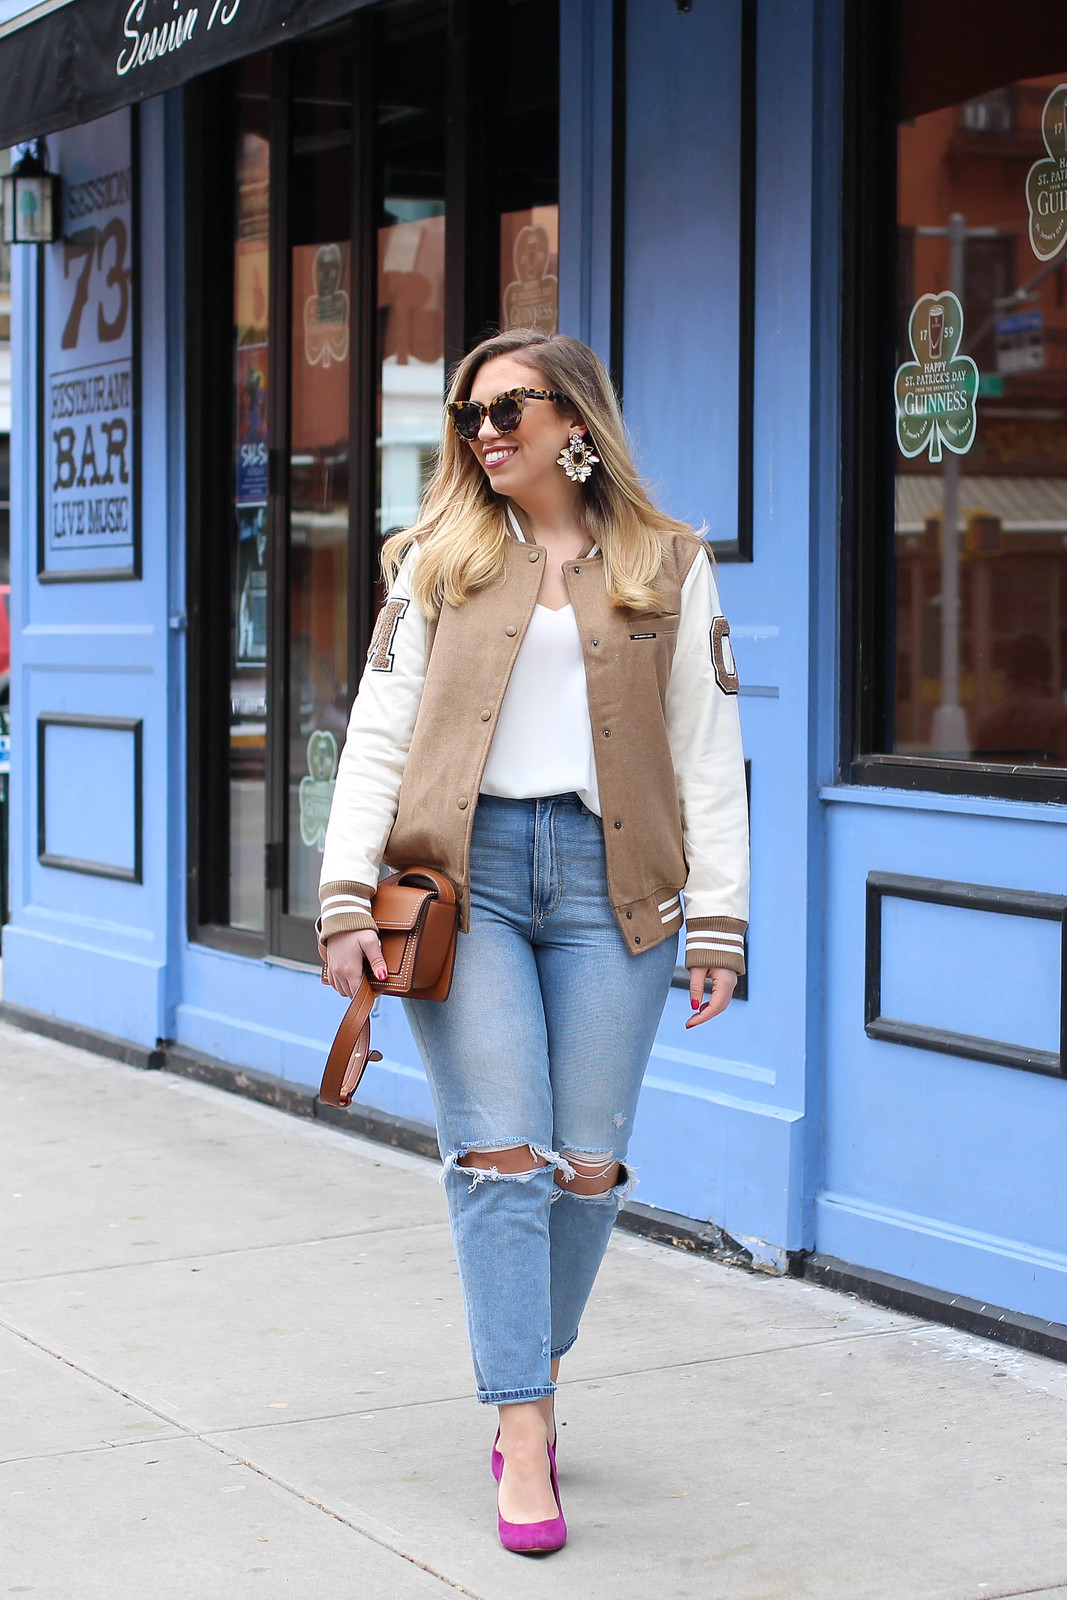 Tan Varsity Jacket High Waist Mom Jeans Pink Suede Heels Spring Outfit Jackie Giardina NYC Blogger Fashion Style